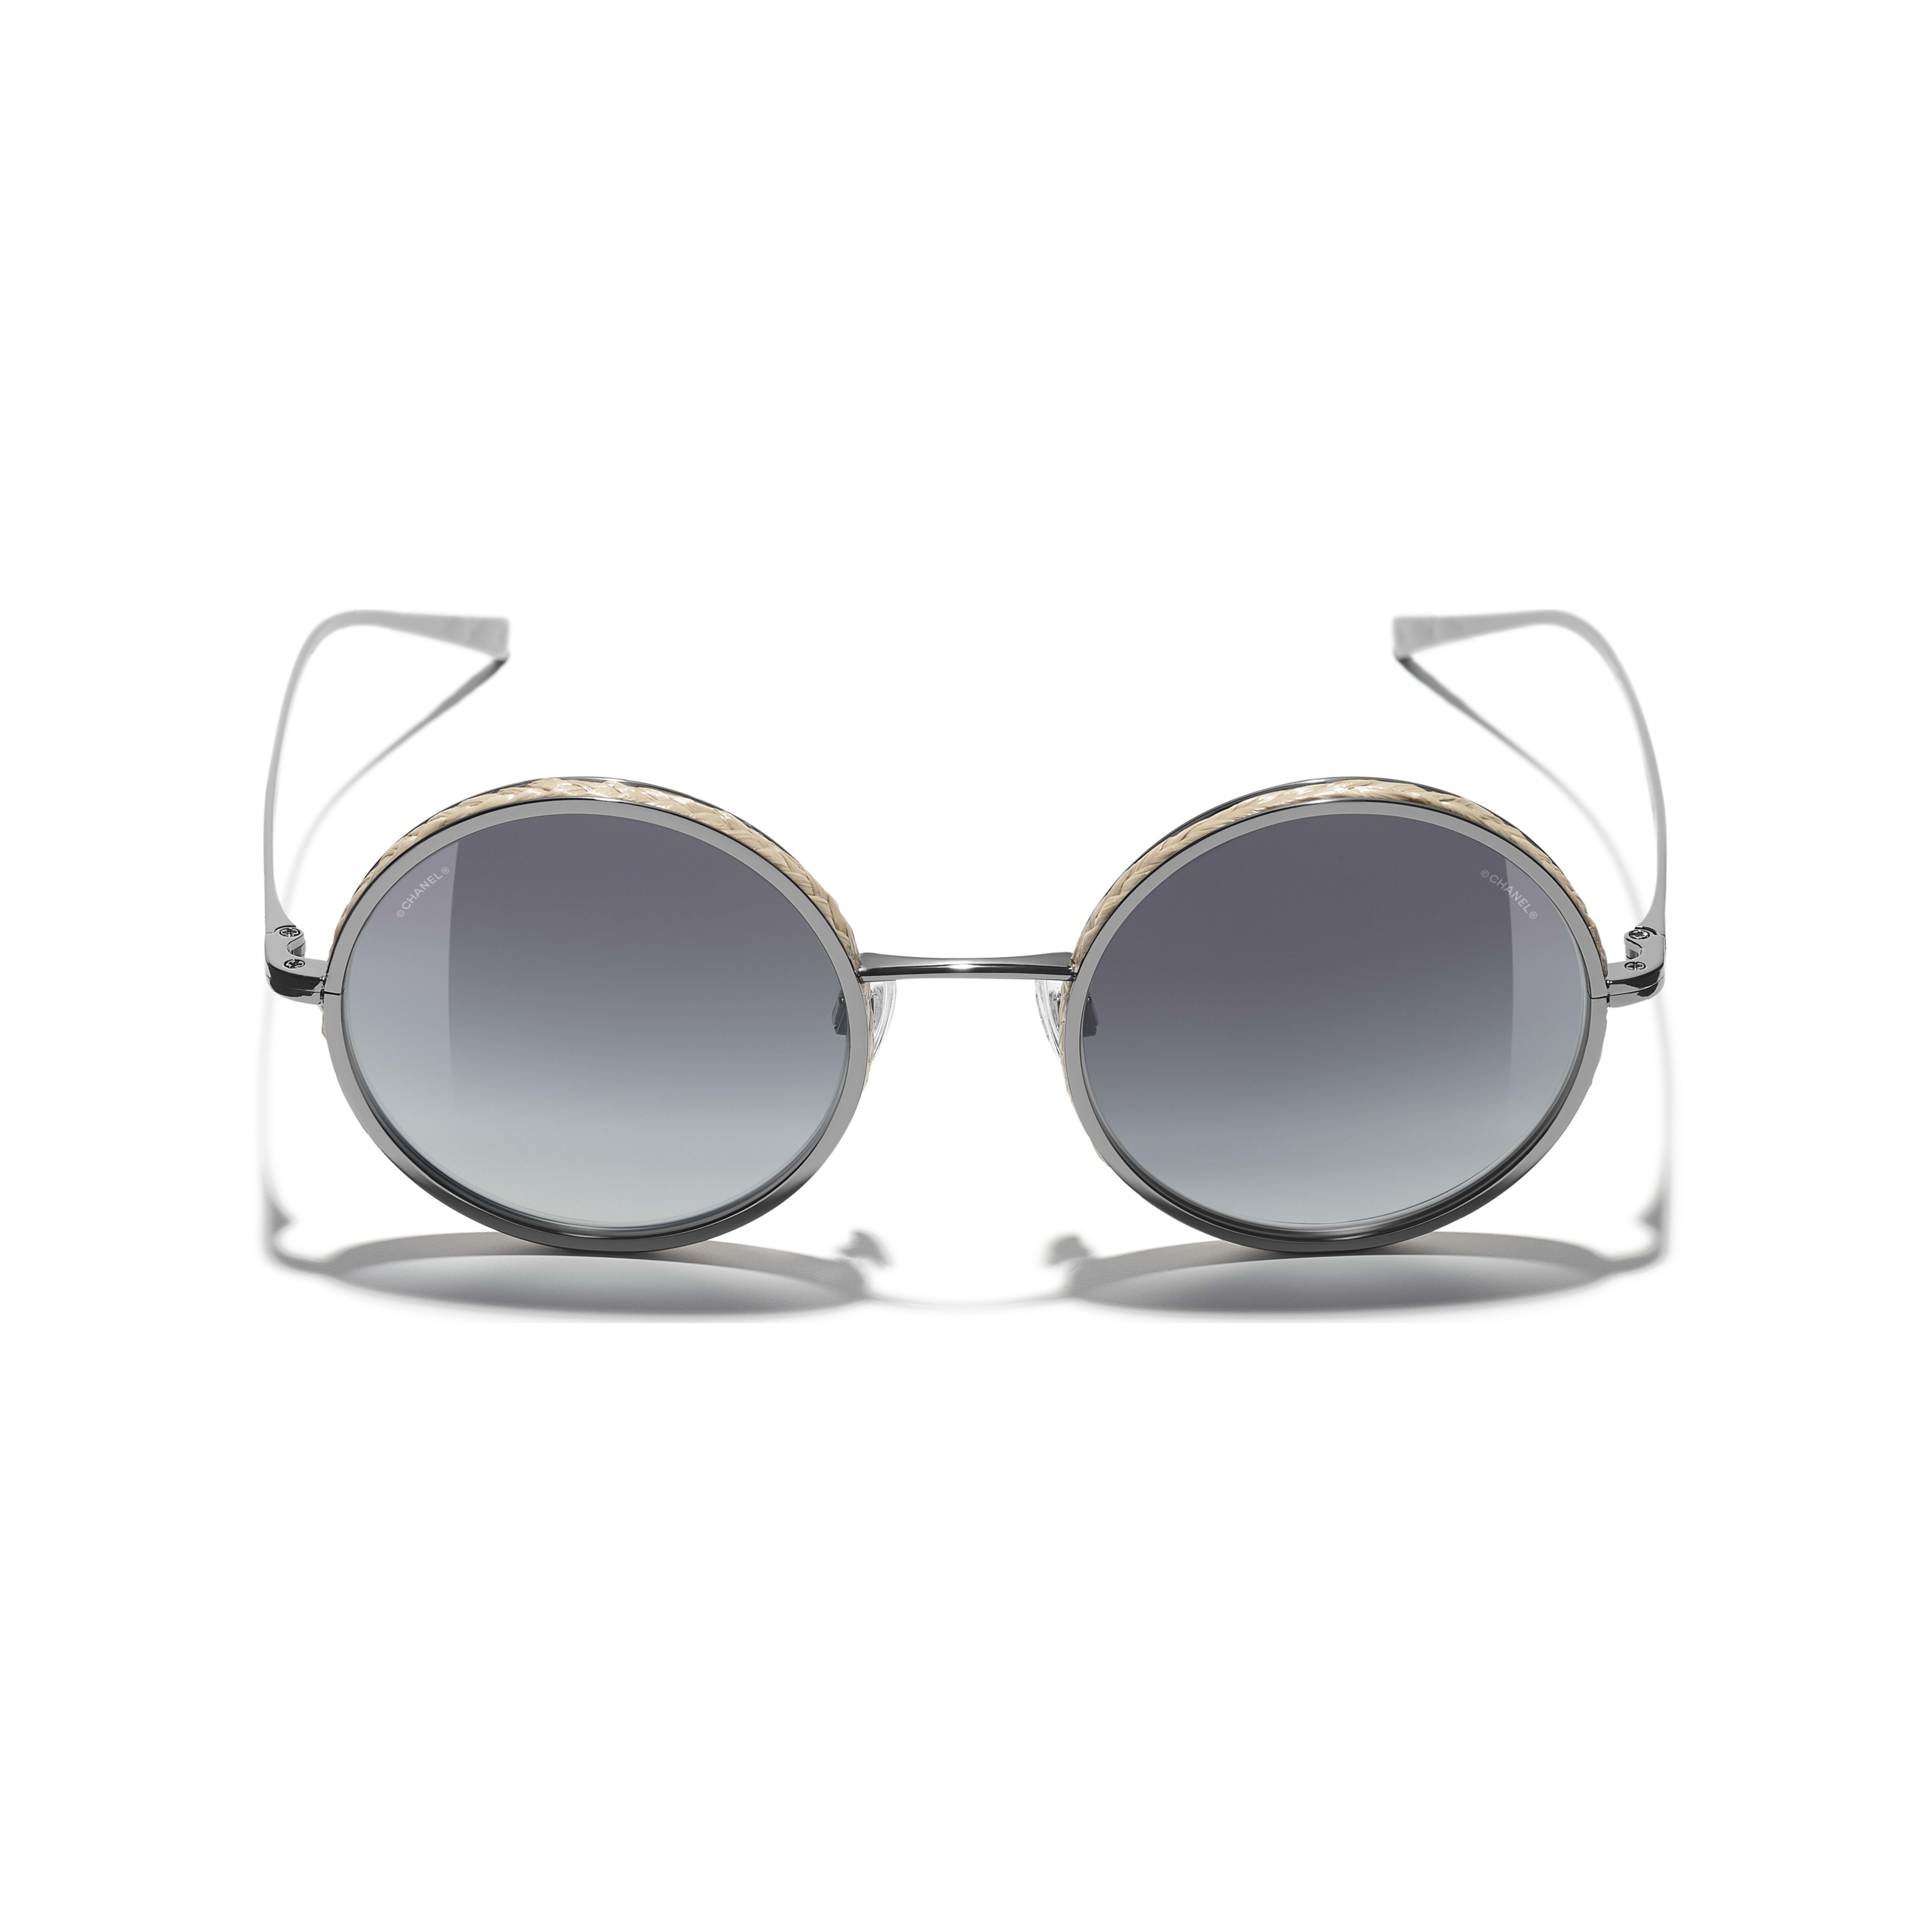 Round Sunglasses - Dark Silver - Metal & Rope - Extra view - see full sized version